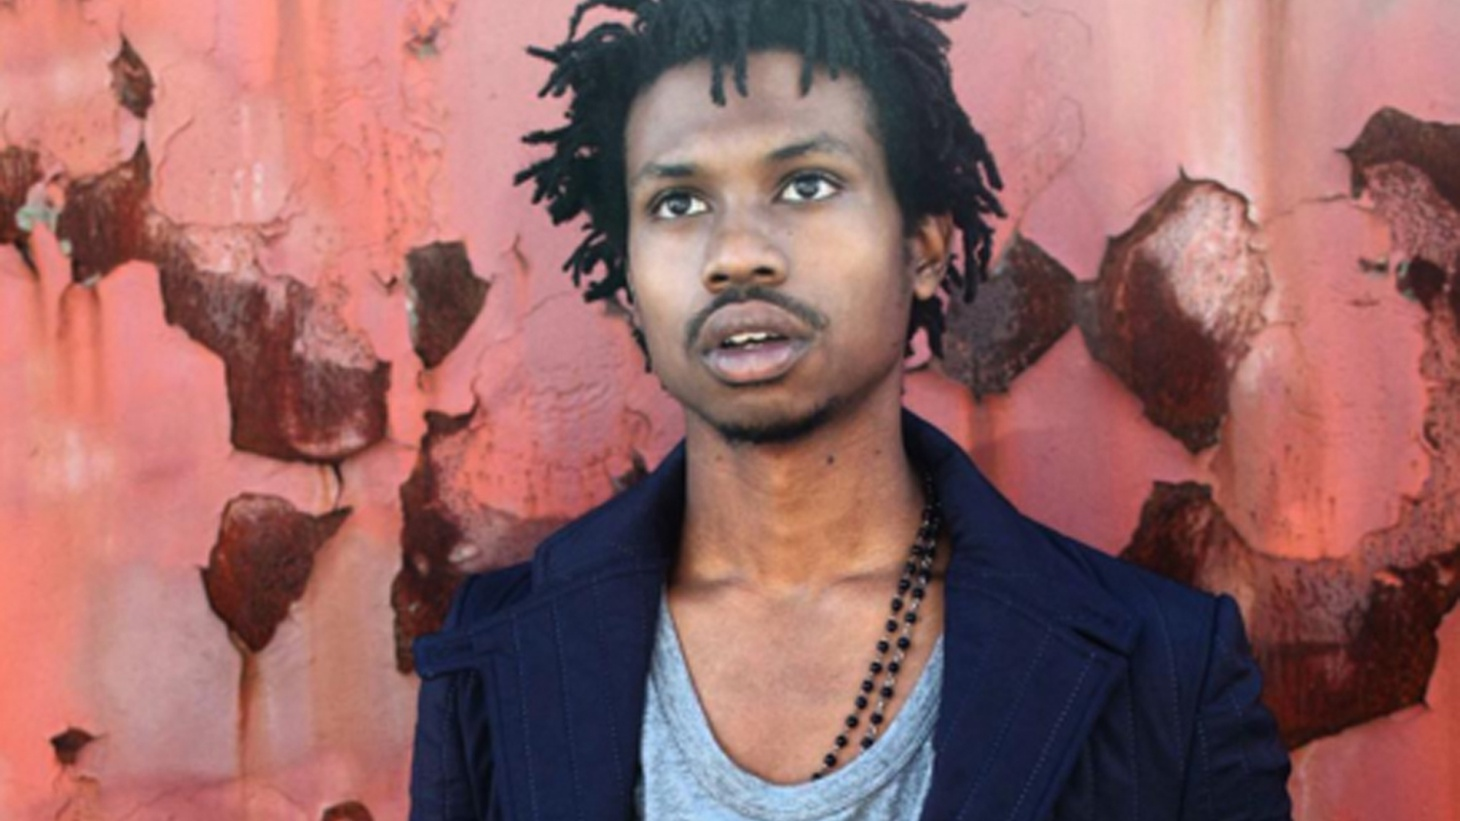 Atlanta musician Raury is only 19 years old and is already being described as a visionary. His sound seamlessly melds hip hop, rock and folk, while his lyrics address serious societal issues, but with compassion, positivity and a call for peace.